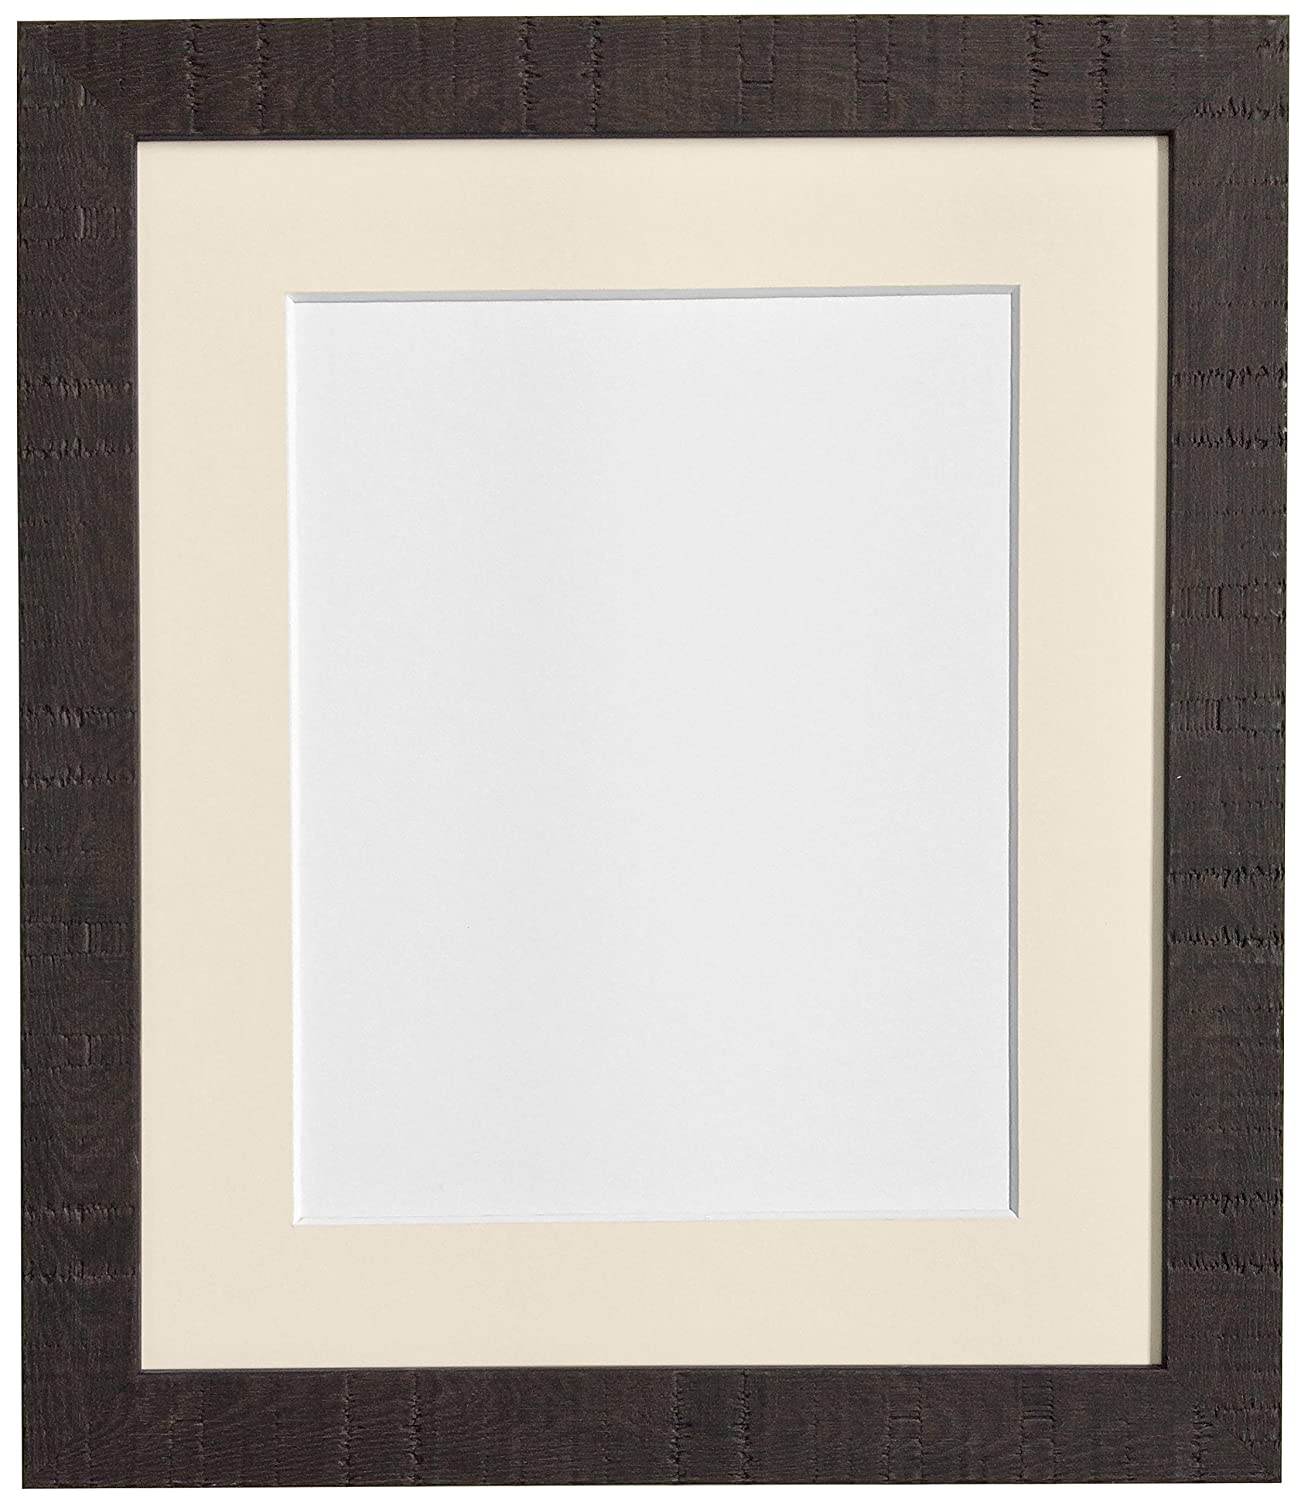 Exelent Photo Frame 40 X 50 Embellishment - Picture Frame Ideas ...